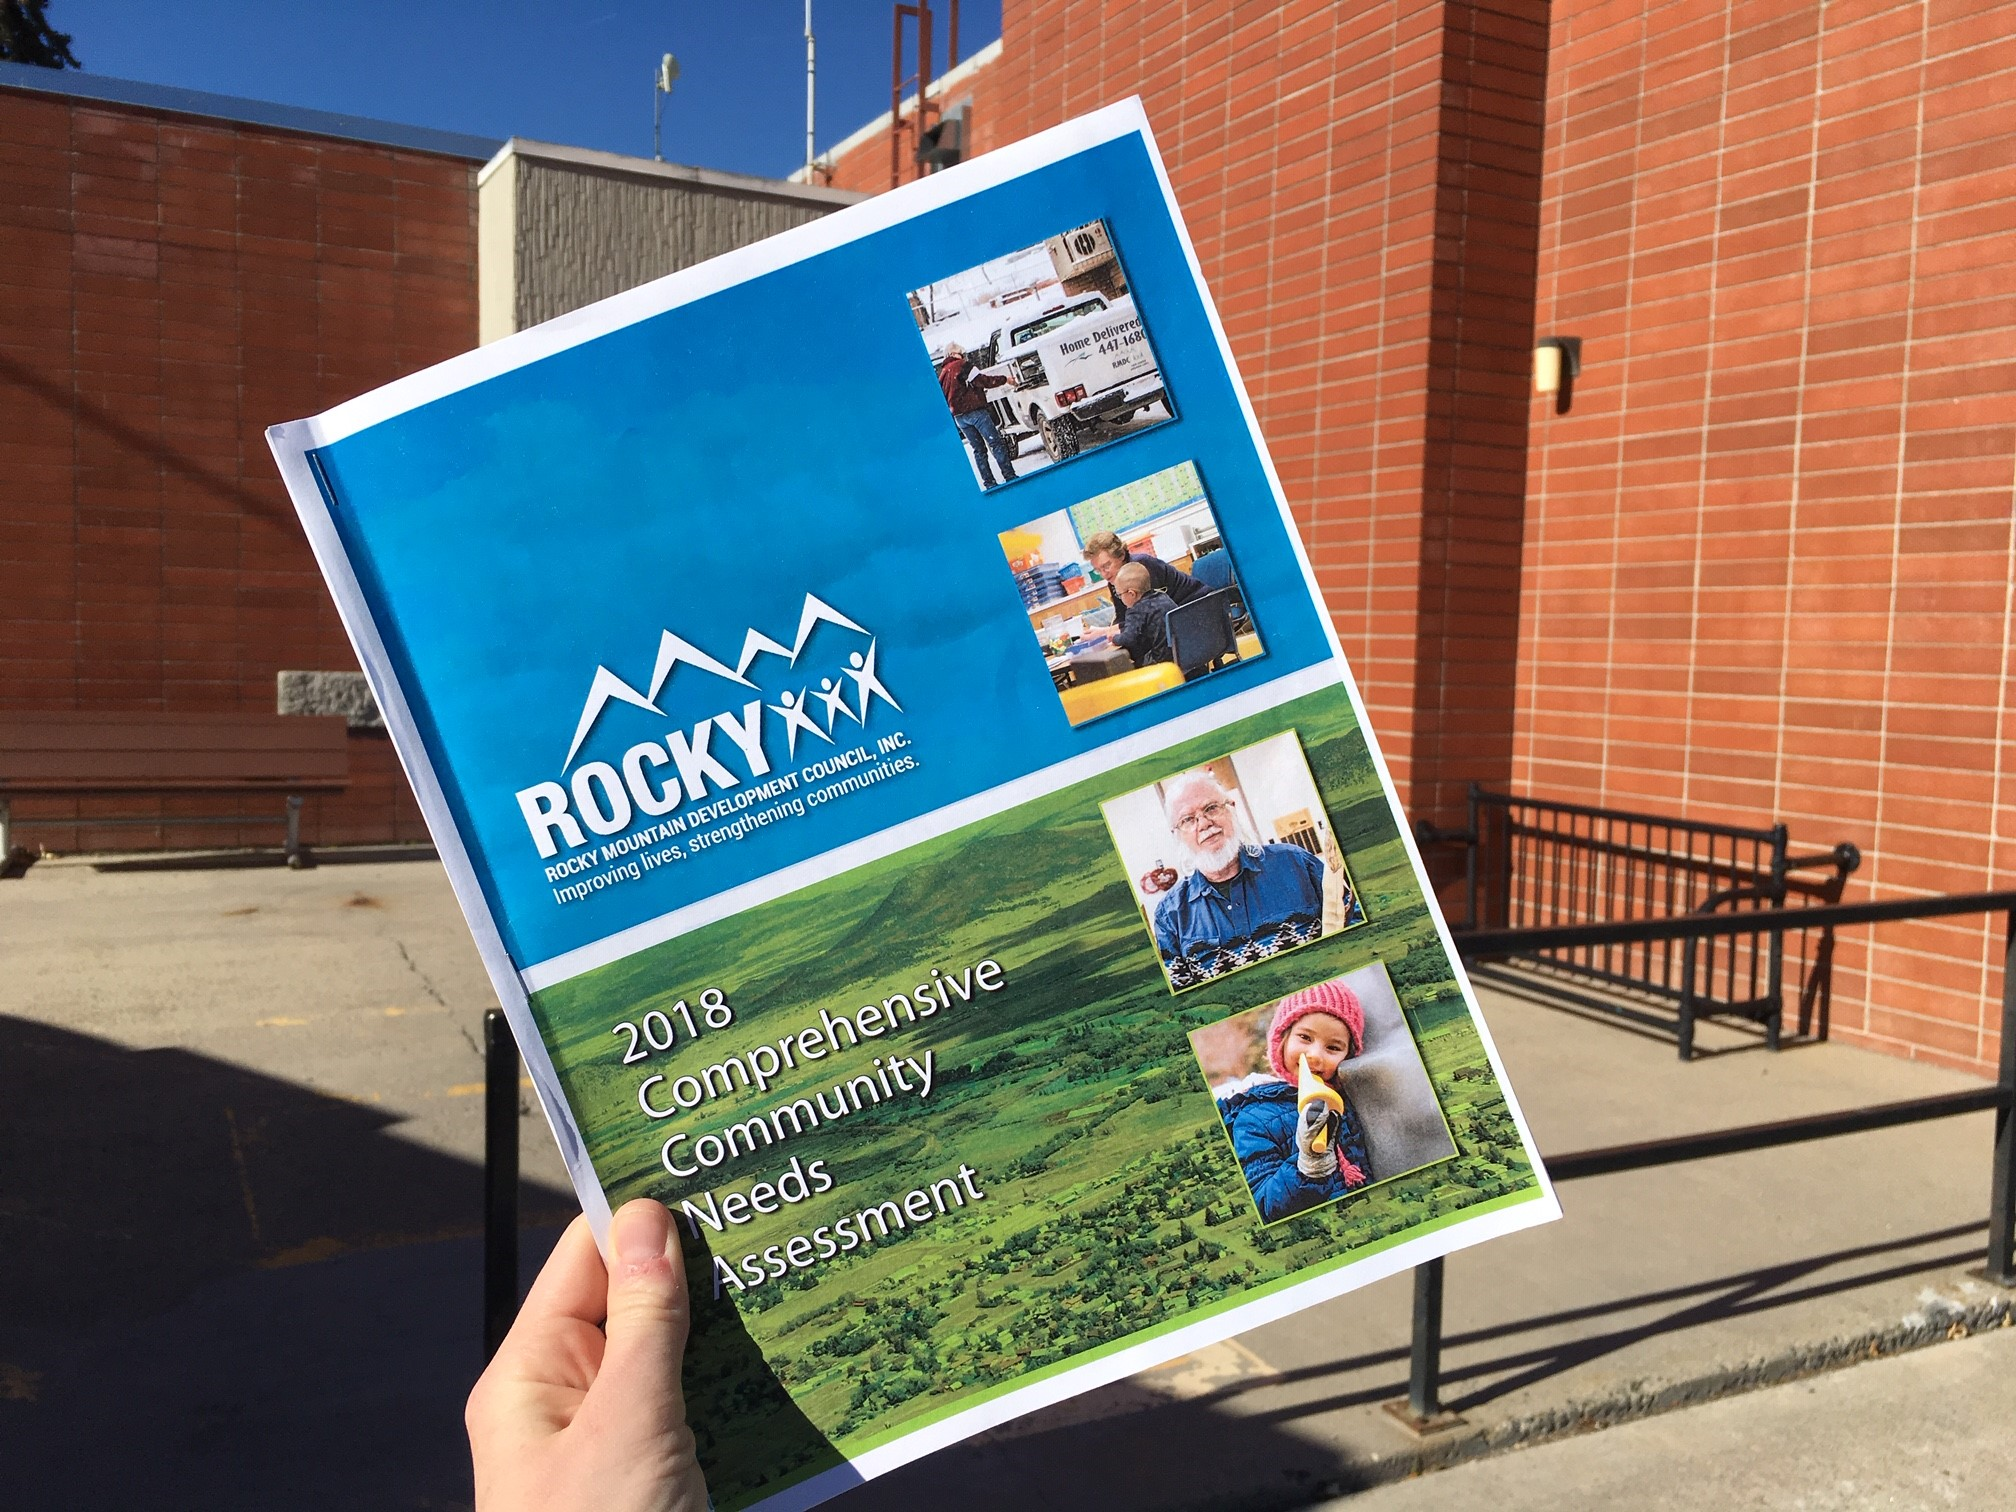 Rocky's 2018 Comprehensive Community Needs Assessment Complete